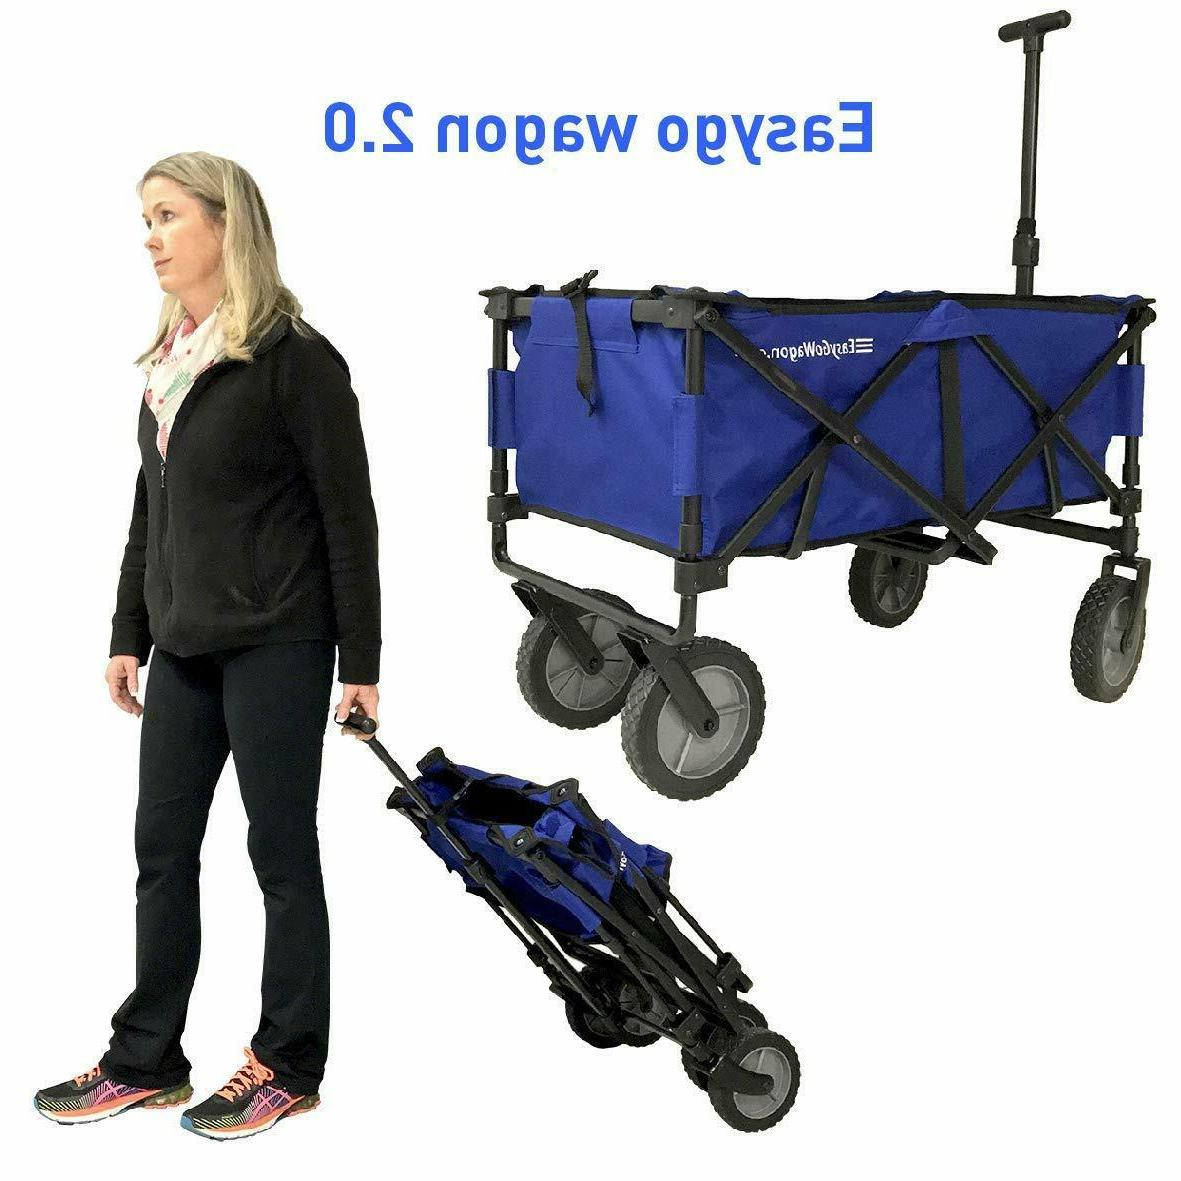 new 1 easygowagon 2 0 folding wagon